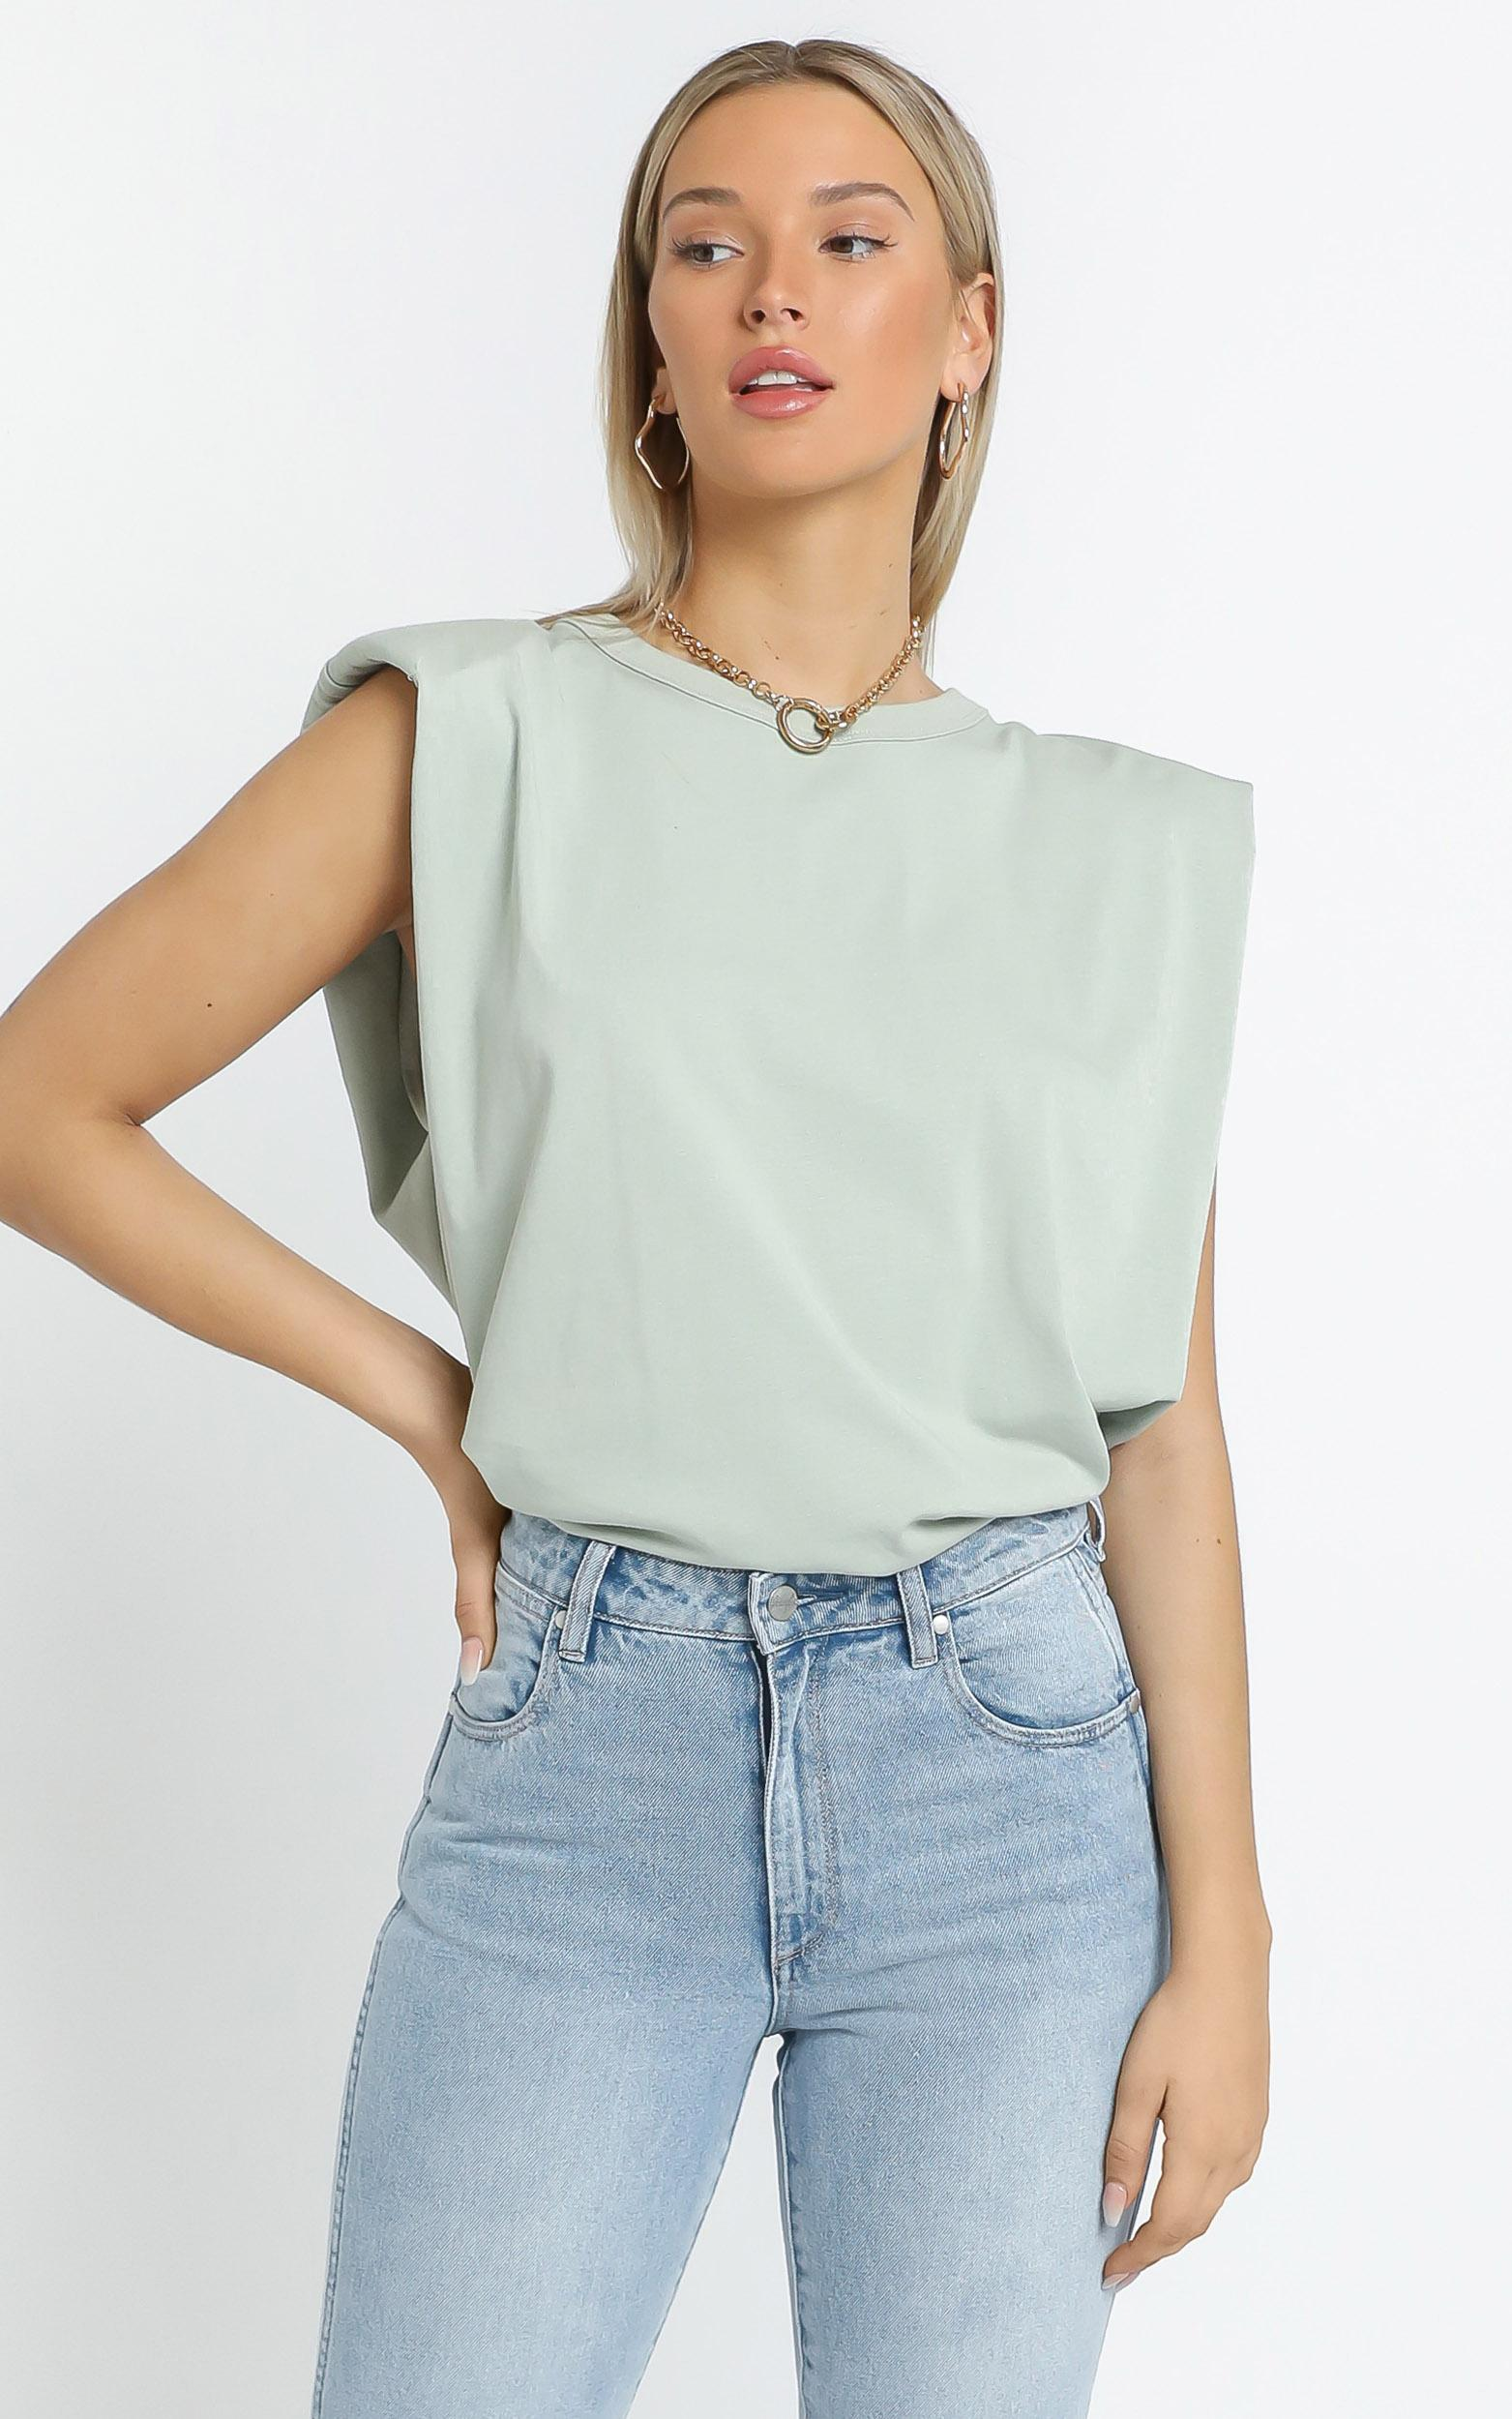 Undine Top in Sage - M/L, GRN1, hi-res image number null